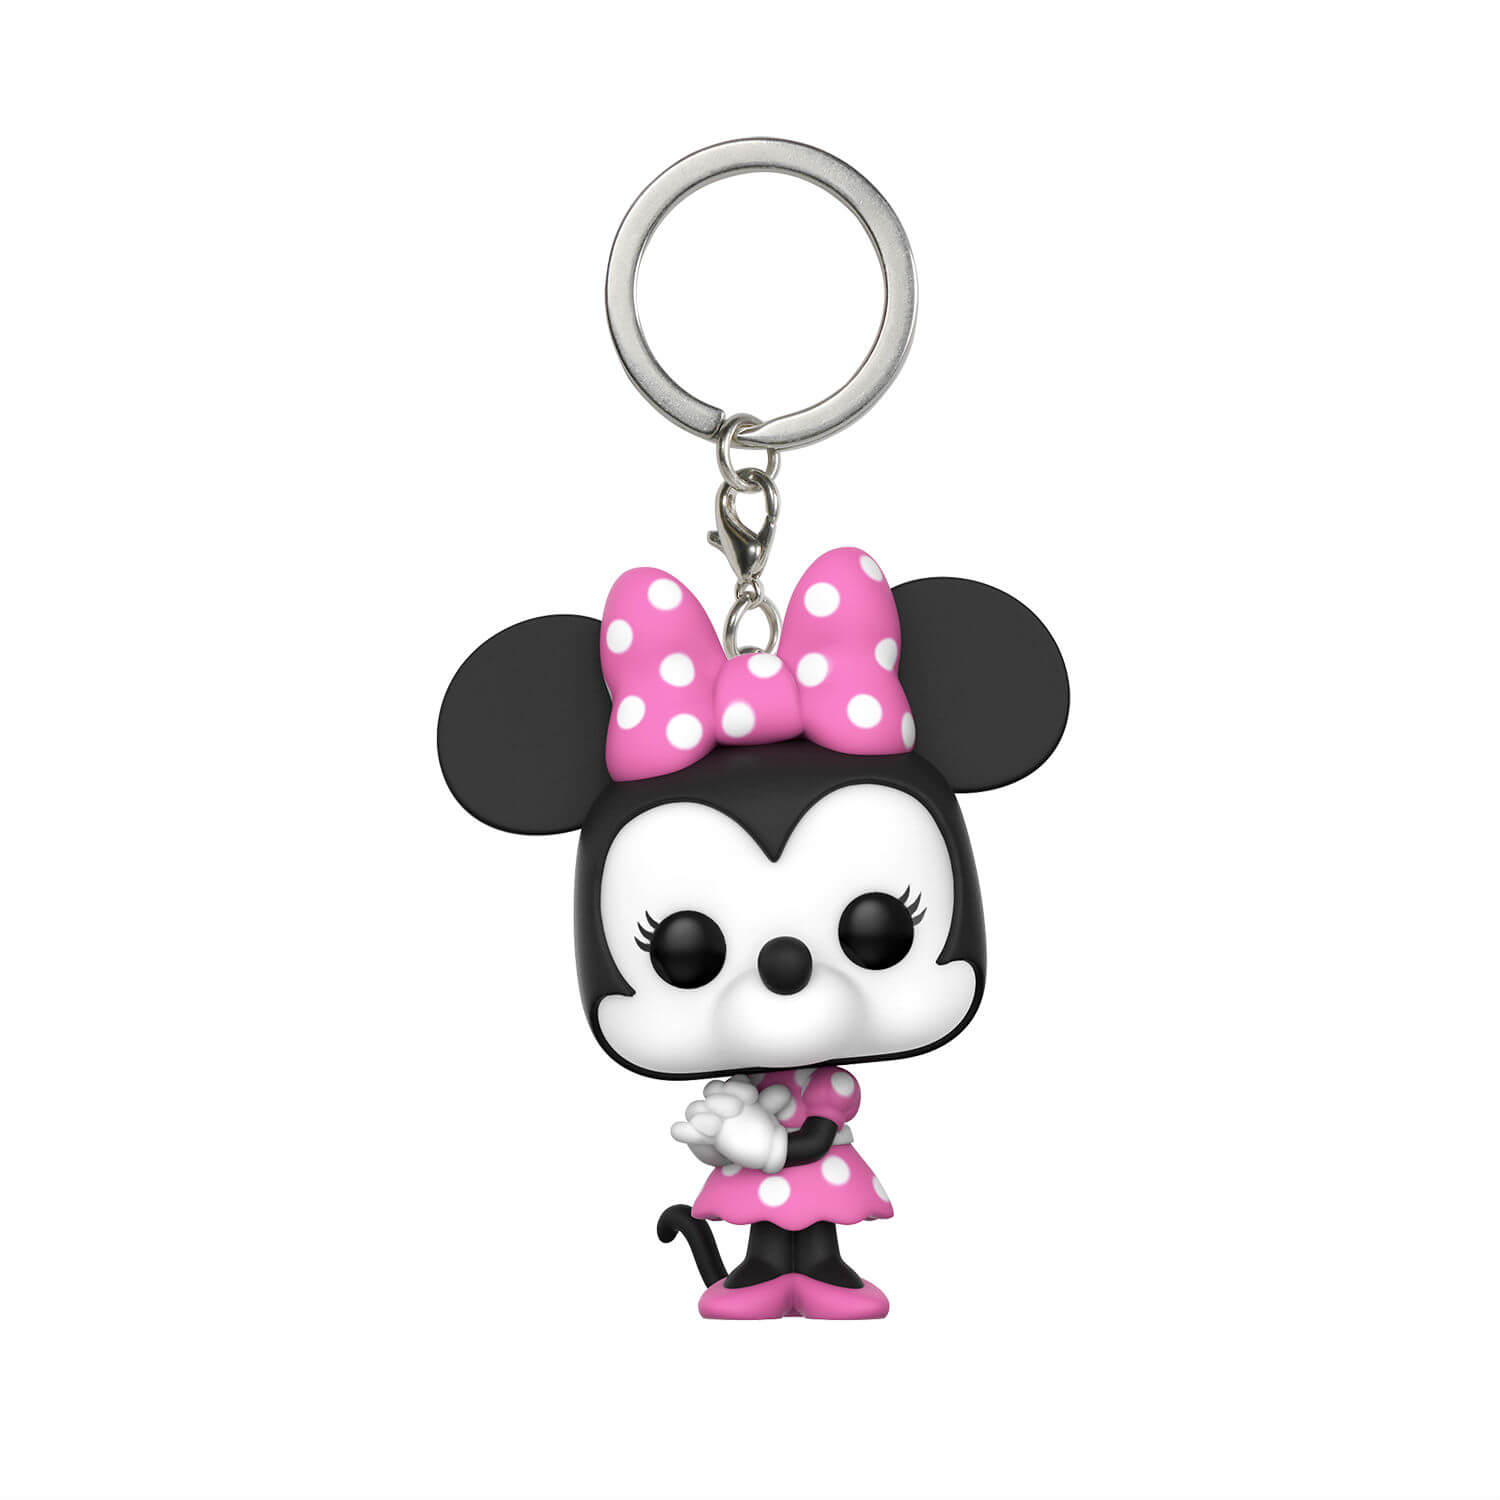 Disney Minnie Mouse Pop! Keychain